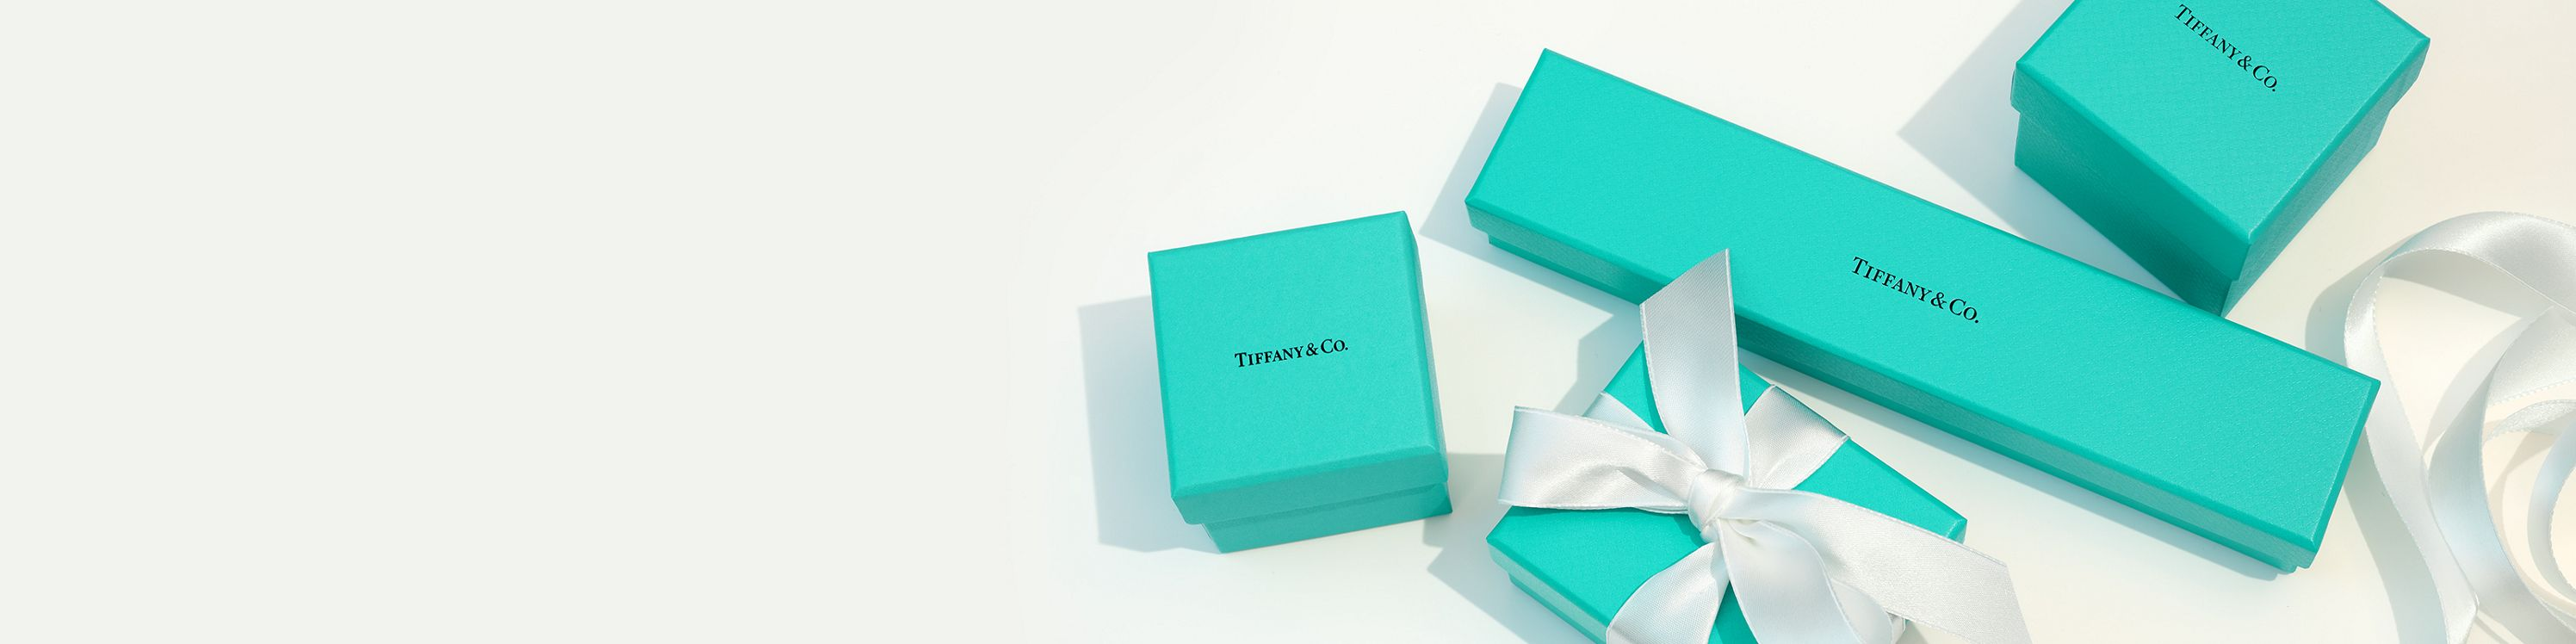 b8d00ab9a4 Tiffany Gifts $250 & Under | Tiffany & Co.